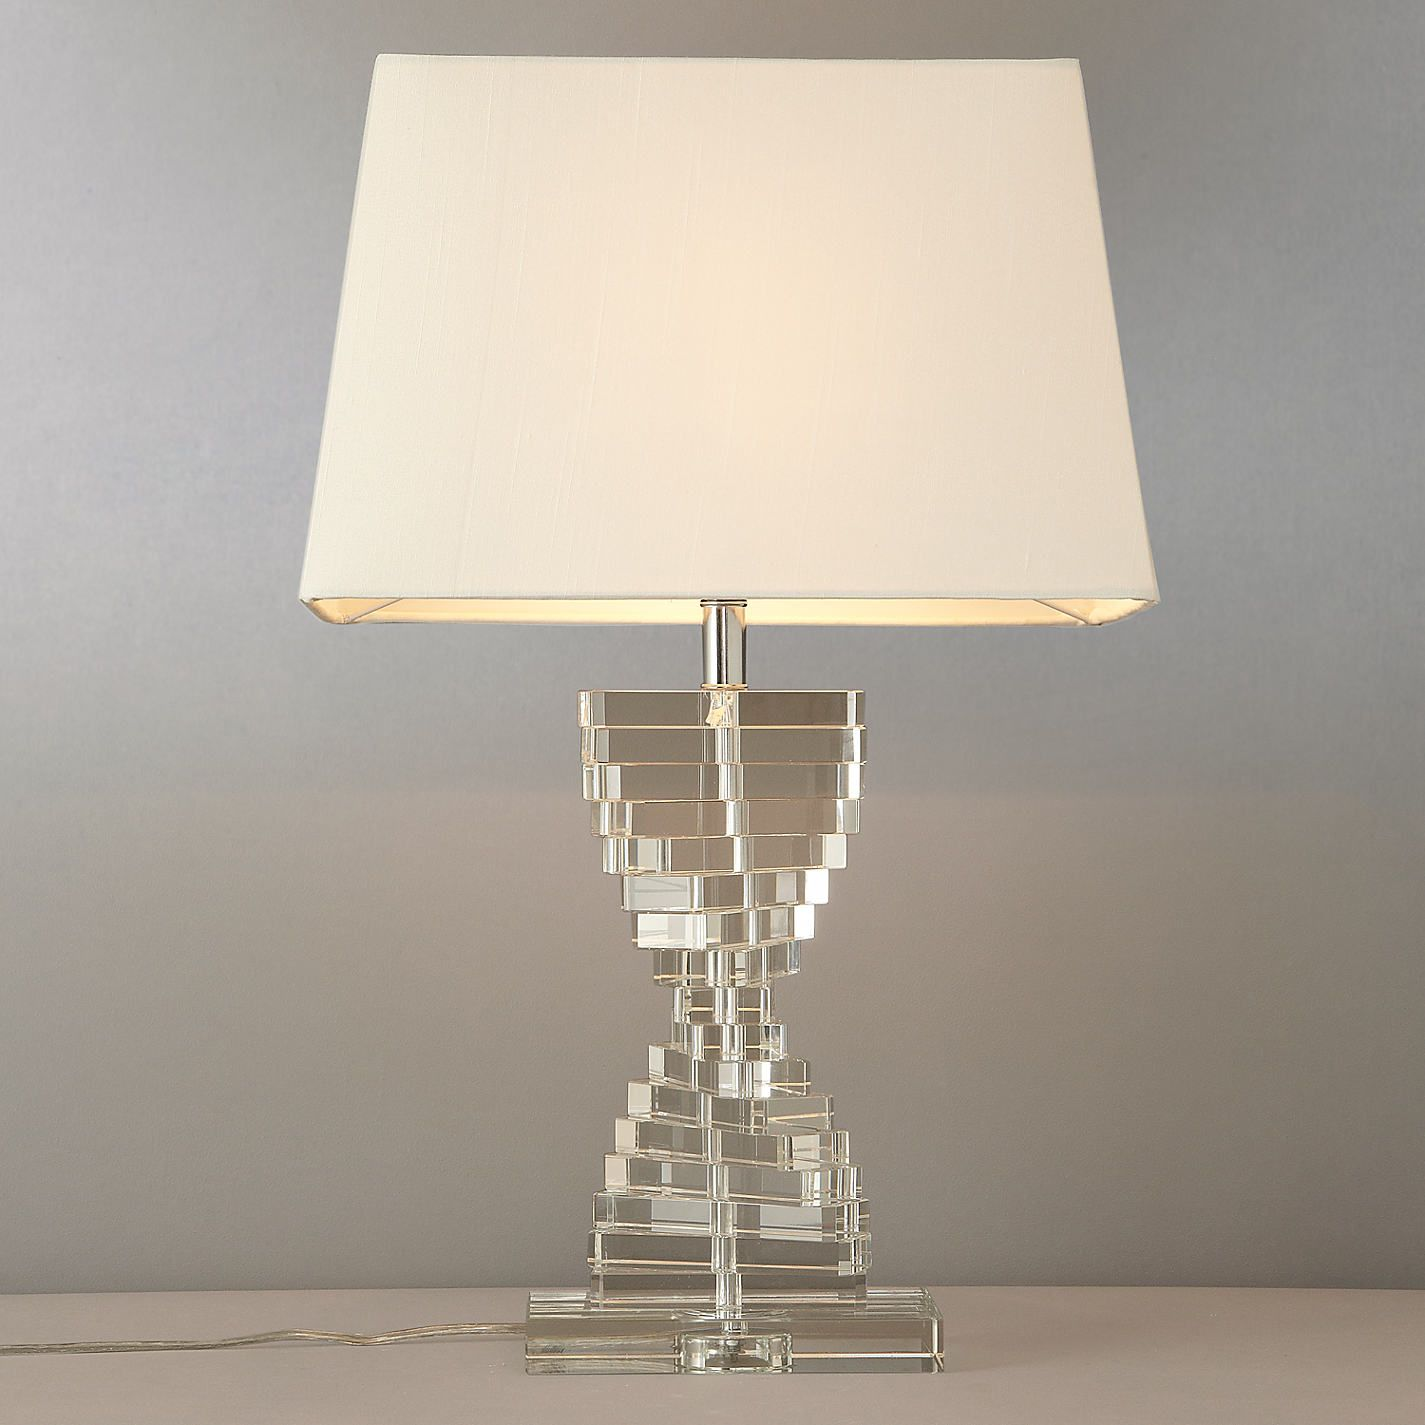 John lewis diana glass steps table lamp pinterest john lewis buy john lewis diana glass steps table lamp from our view all table lamps range at john lewis free delivery on orders over 50 mozeypictures Gallery